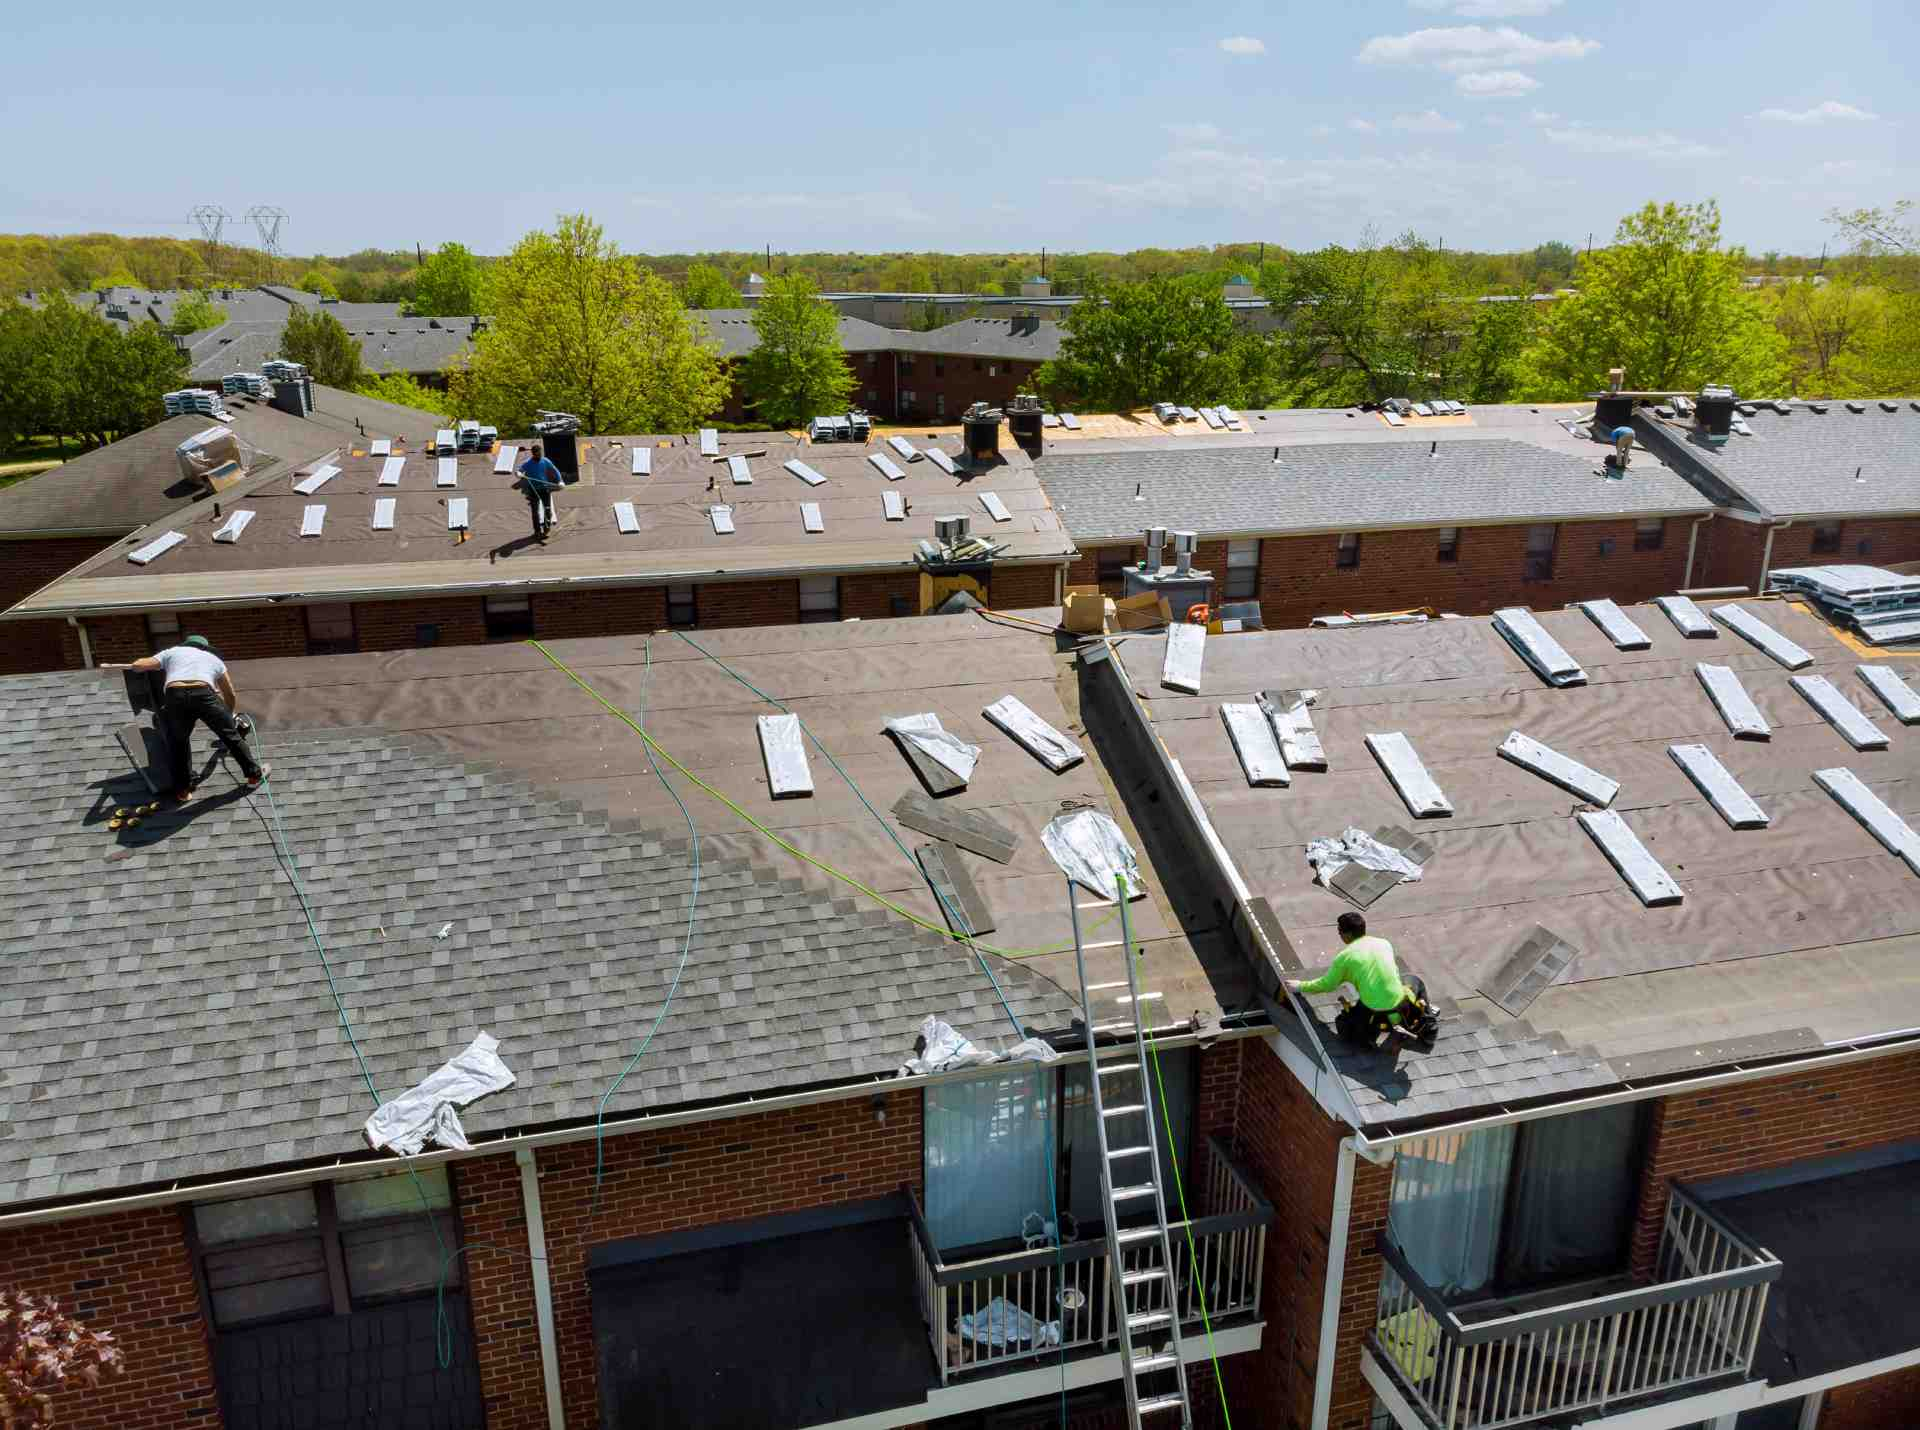 How Do I Know if My House Needs a Roof?